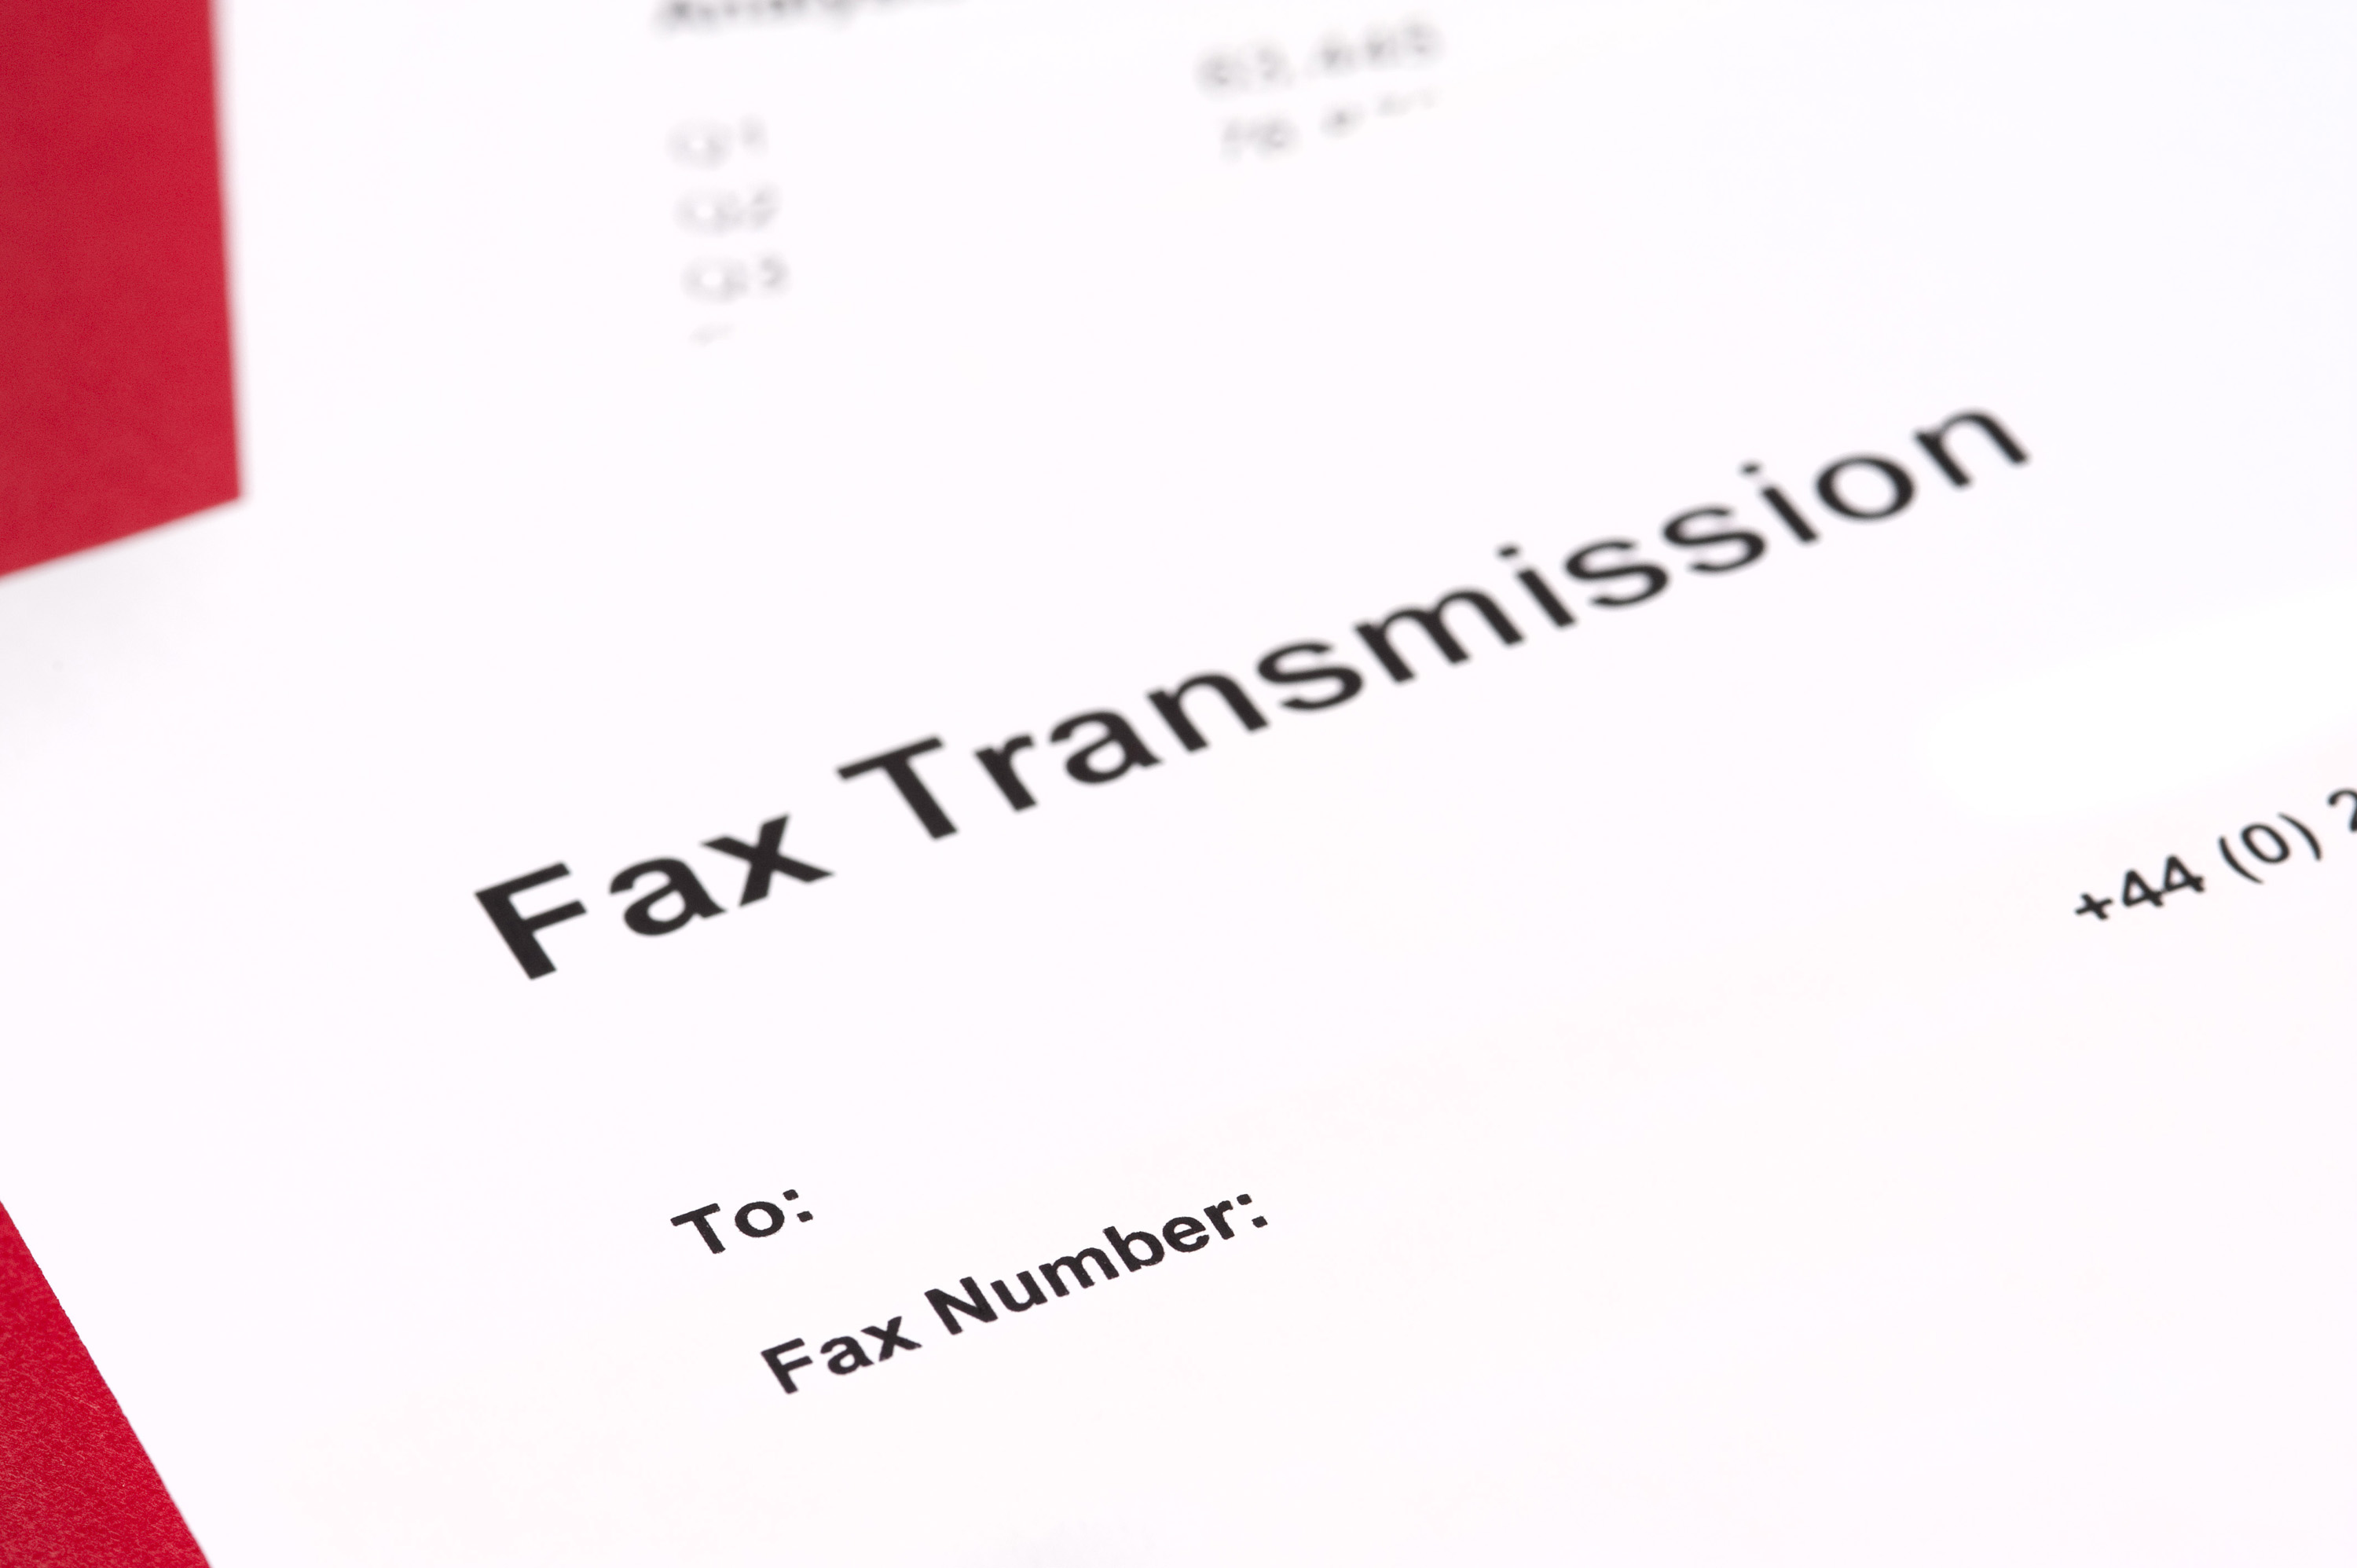 photograph relating to Blank Fax Form named Absolutely free graphic of Blank fax transmission kind